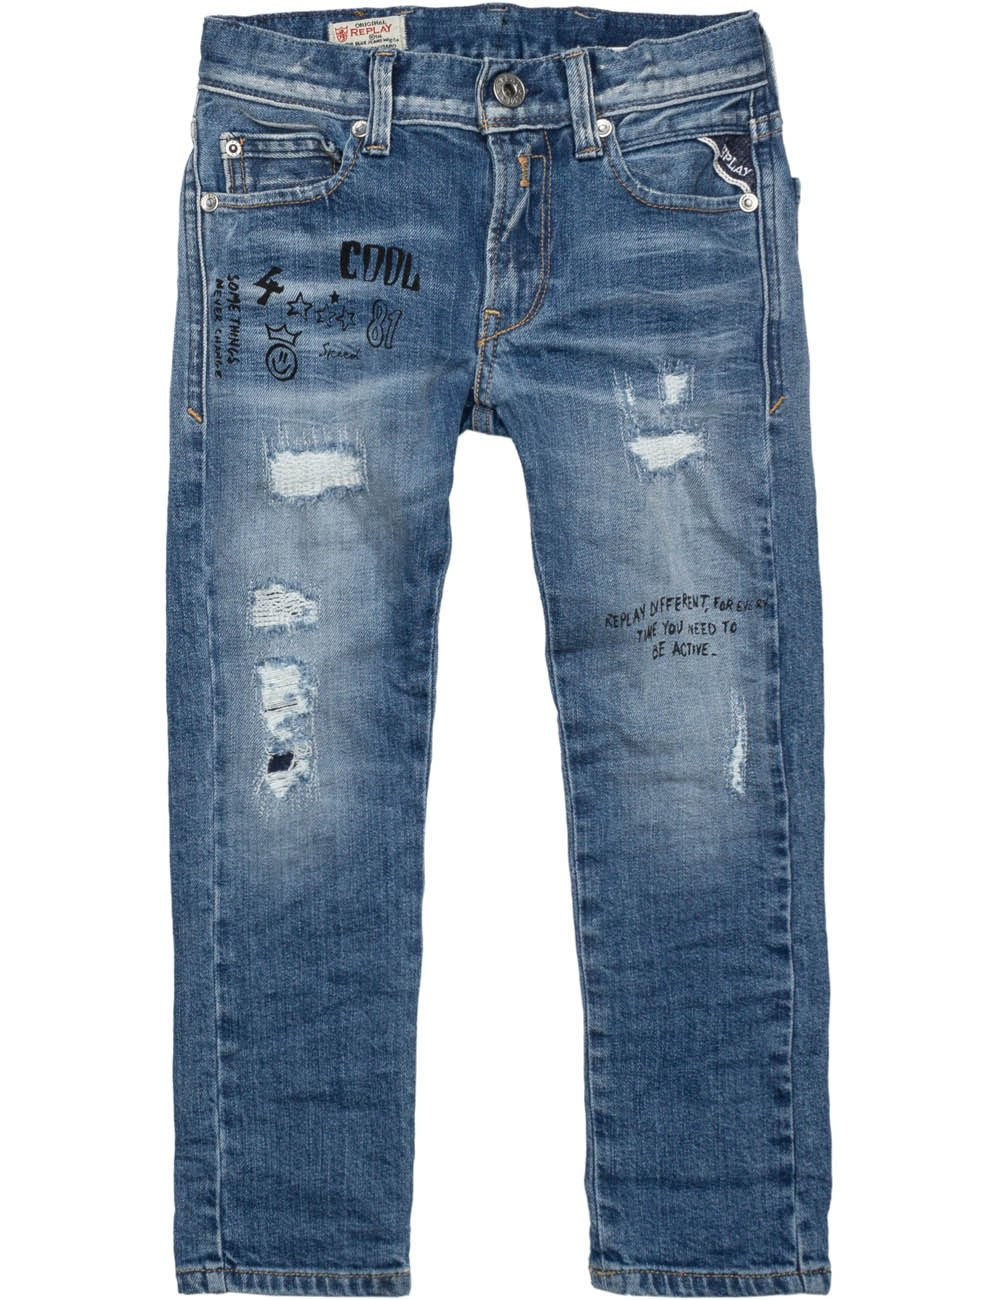 Replay Boys Blue Denim Trousers With Rips And Print in Size 12 Years Blue by Replay